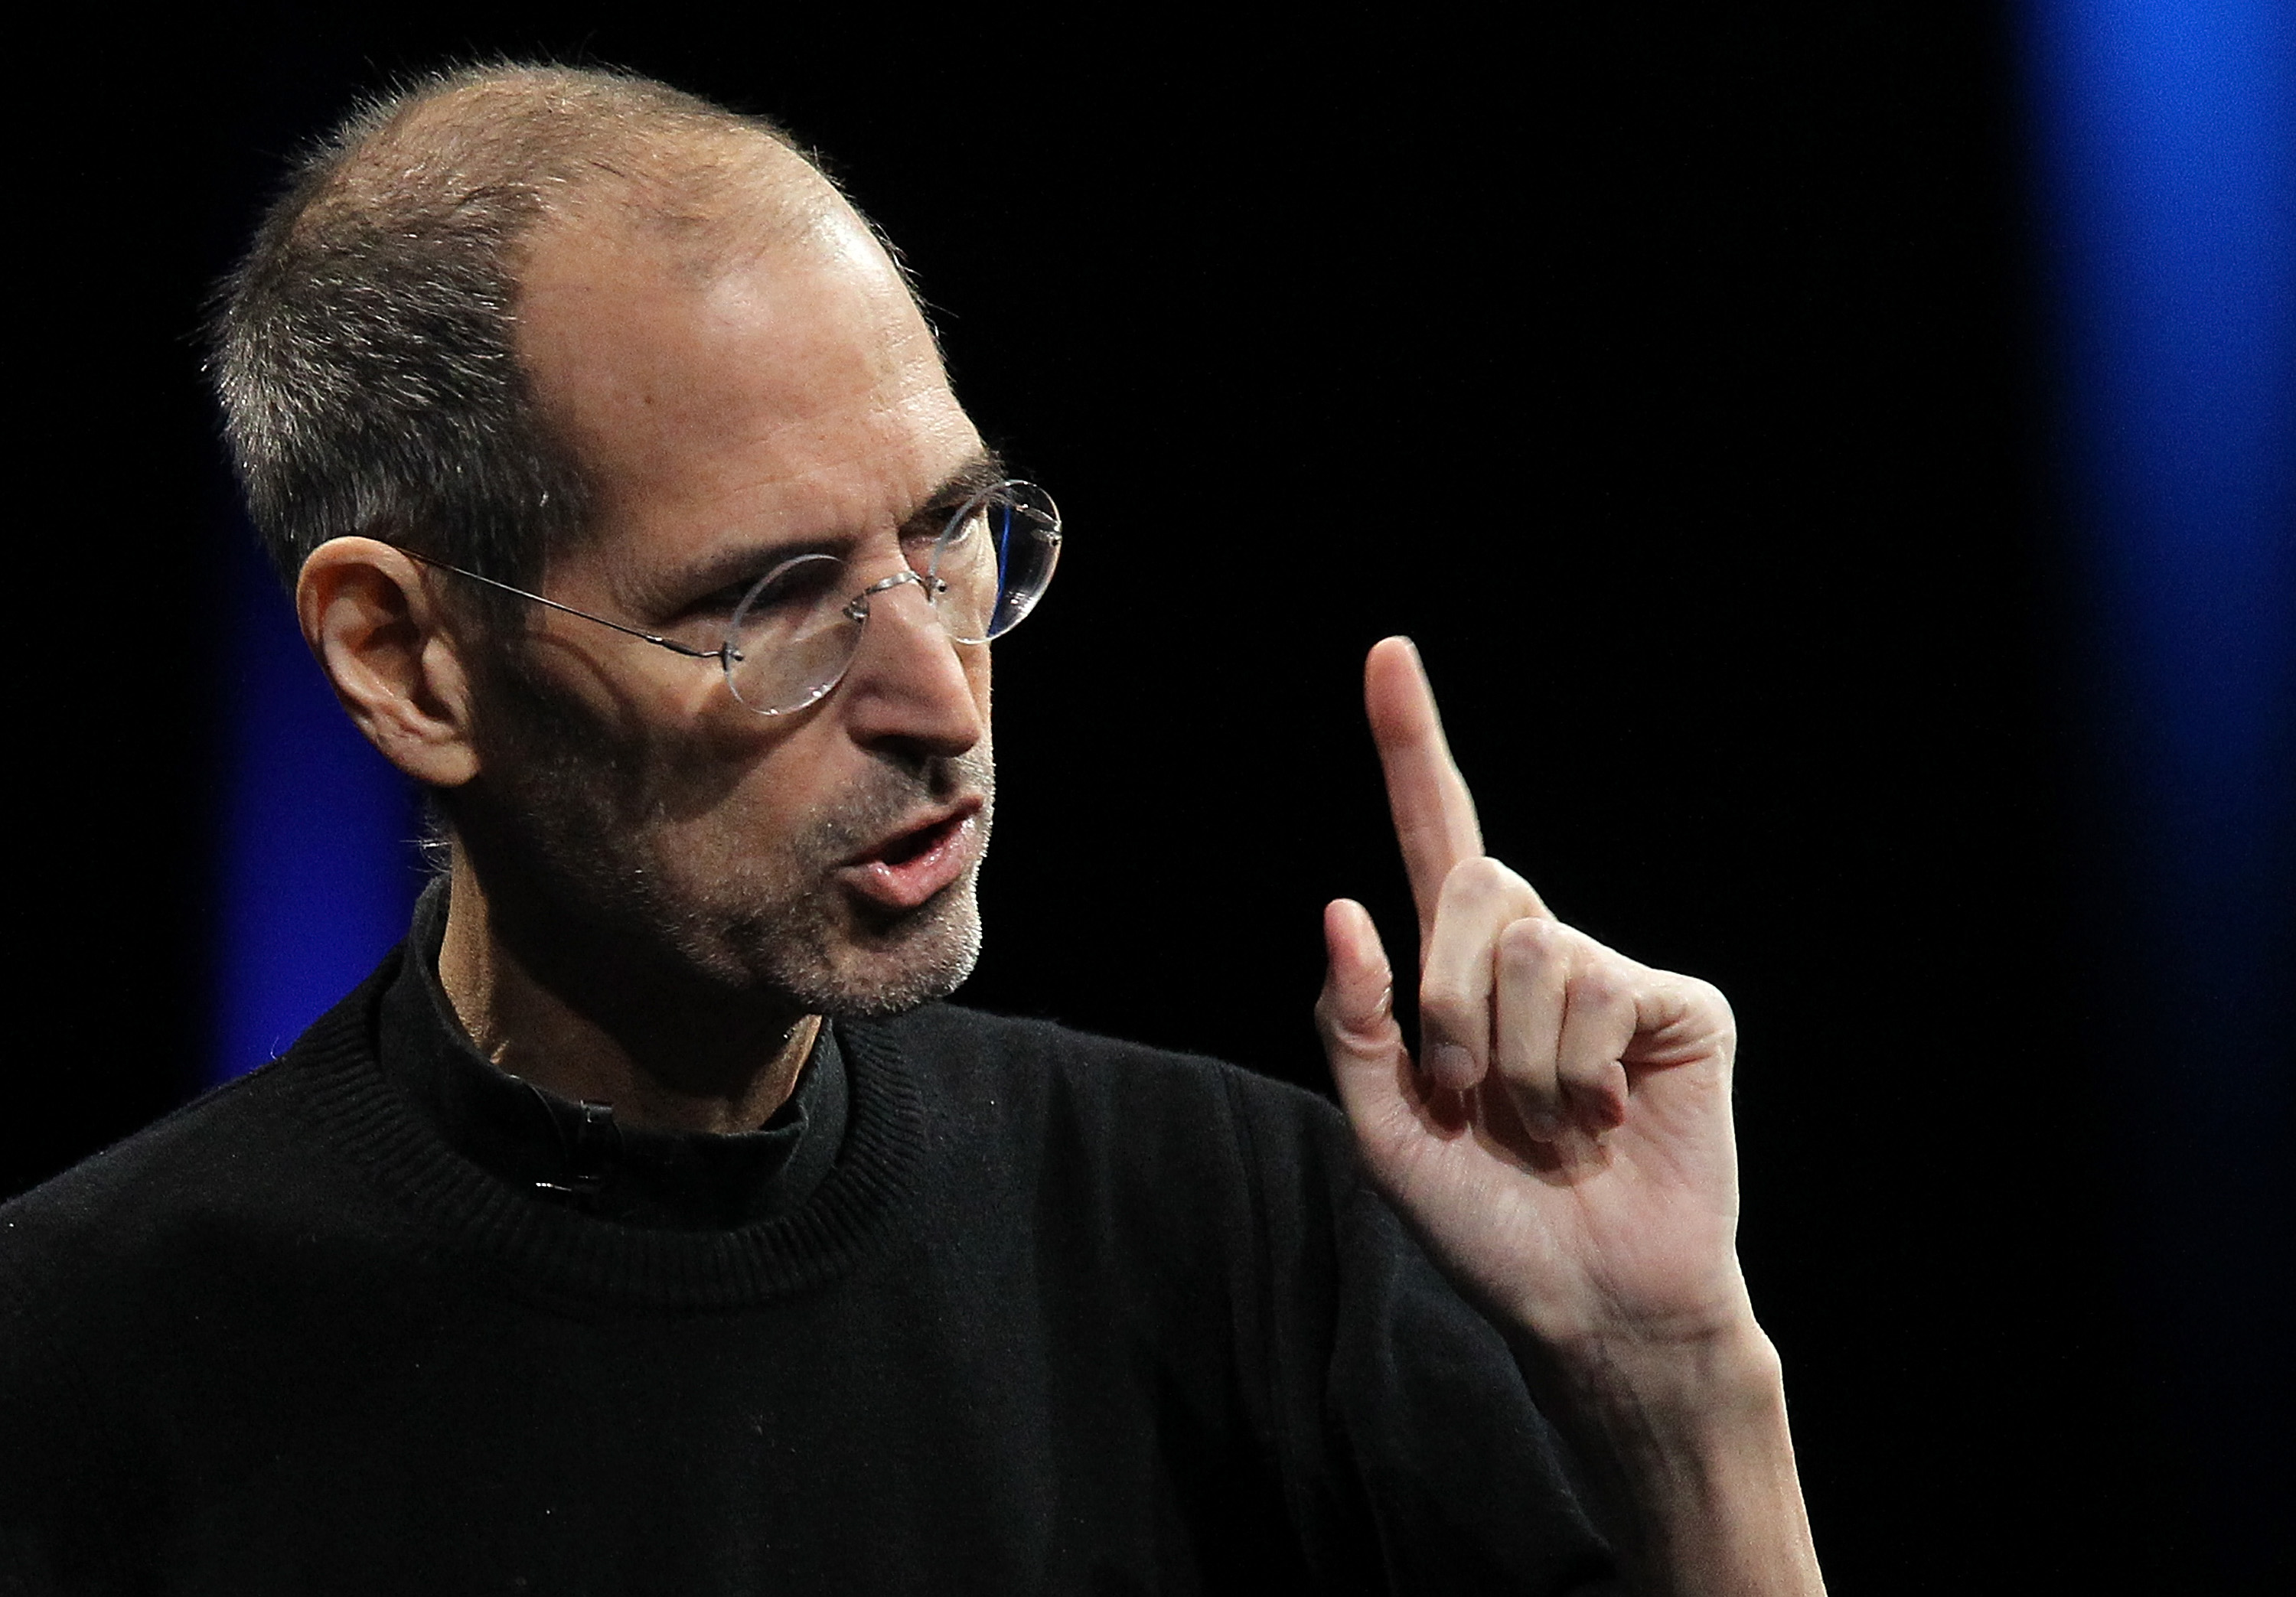 Apple CEO Steve Jobs delivers the keynote address at a conference  on June 6, 2011 in San Francisco, California.